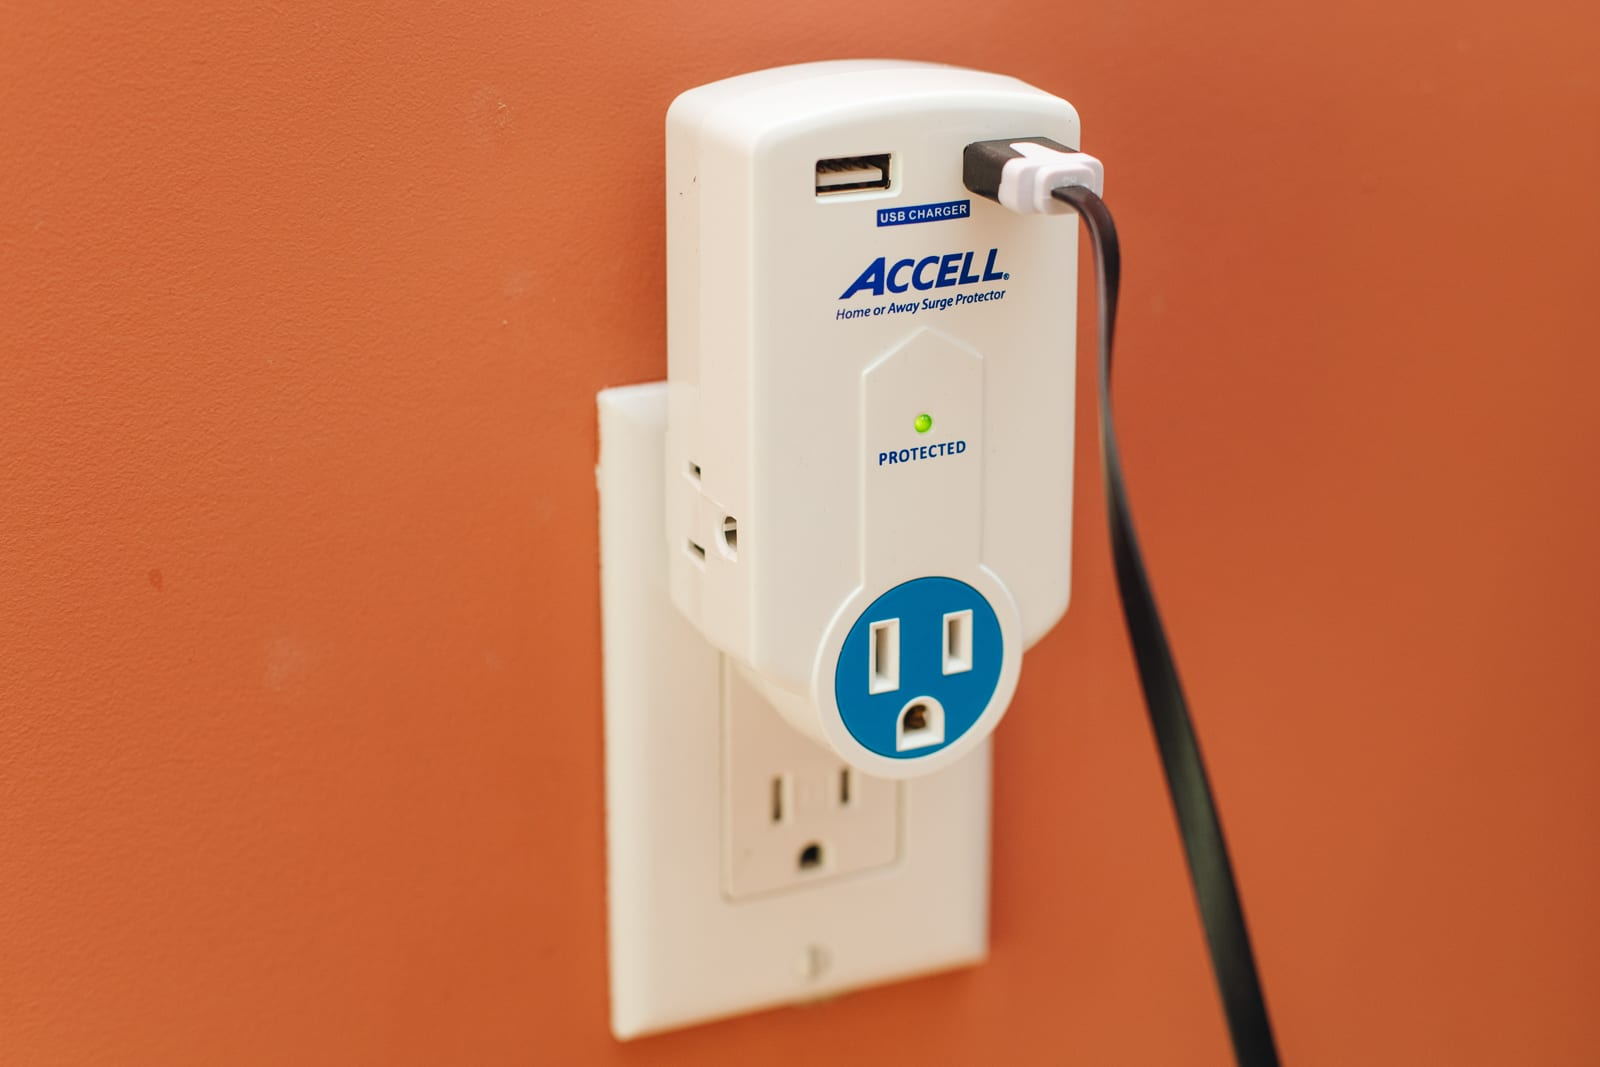 Portable power strips and surge protectors with USB charging